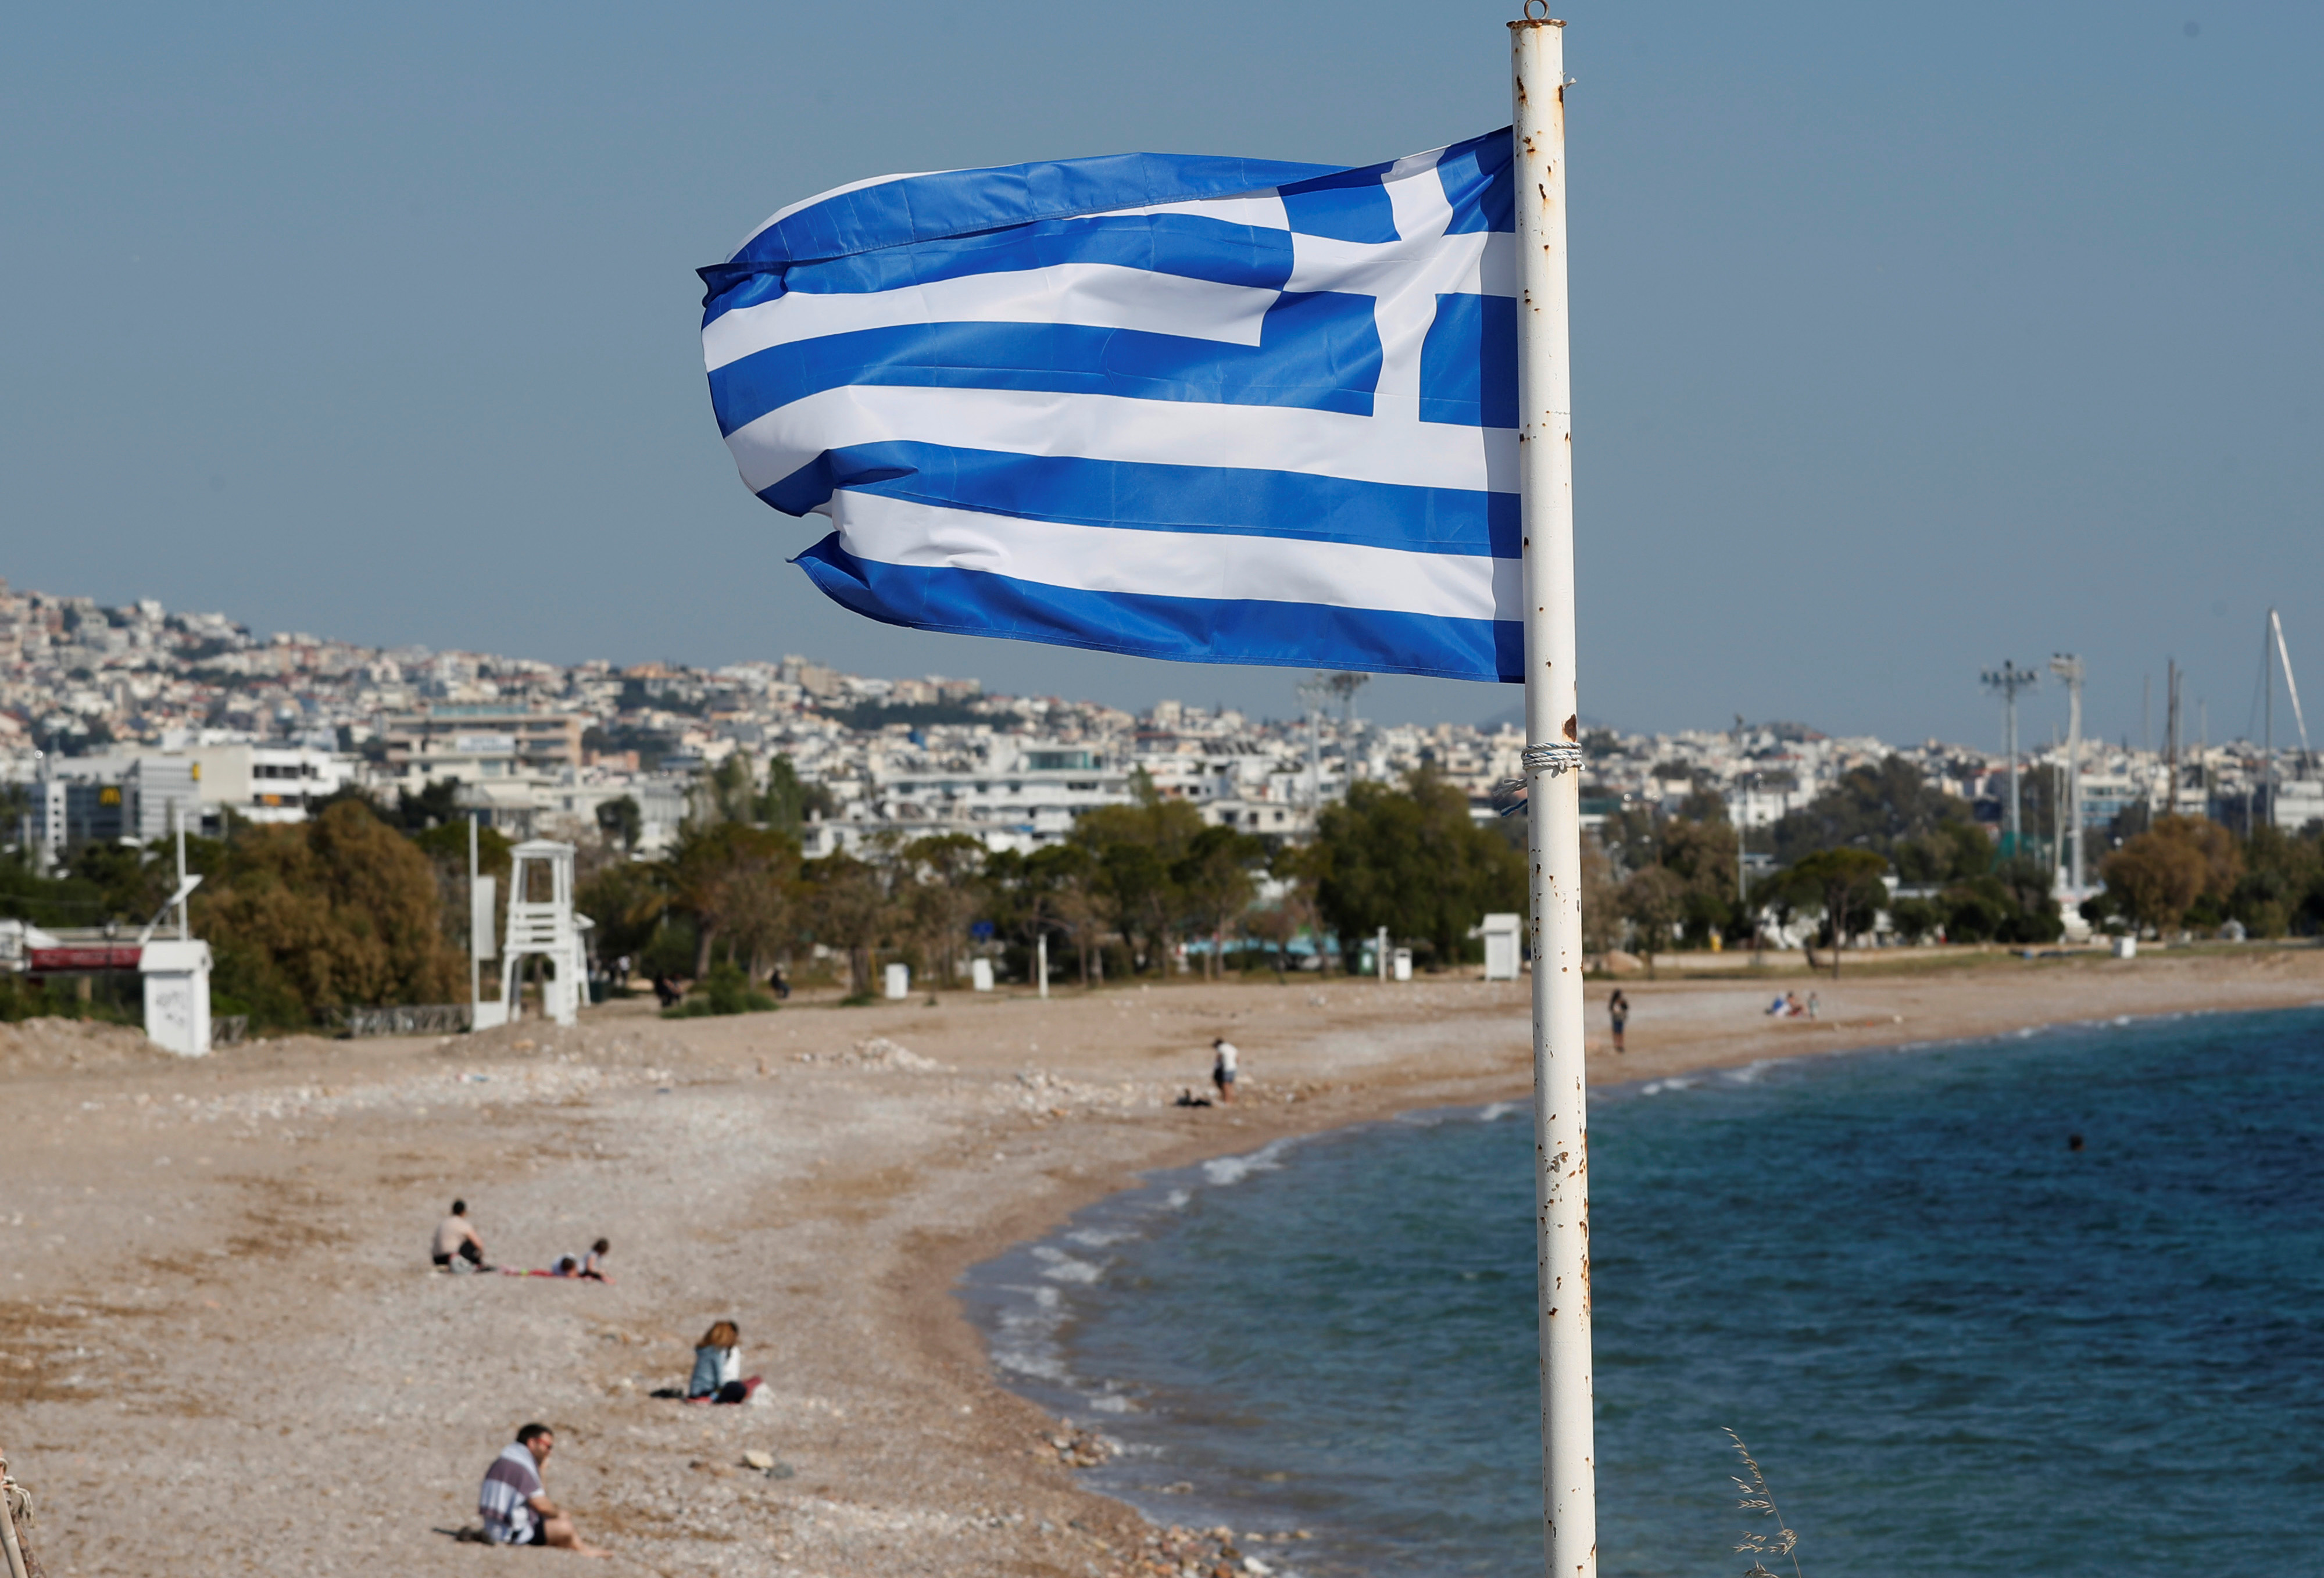 A Greek national flag flutters as people visit a beach, following the coronavirus disease (COVID-19) outbreak, in Athens, Greece, April 28, 2020. Picture taken April 28, 2020. REUTERS/Goran Tomasevic